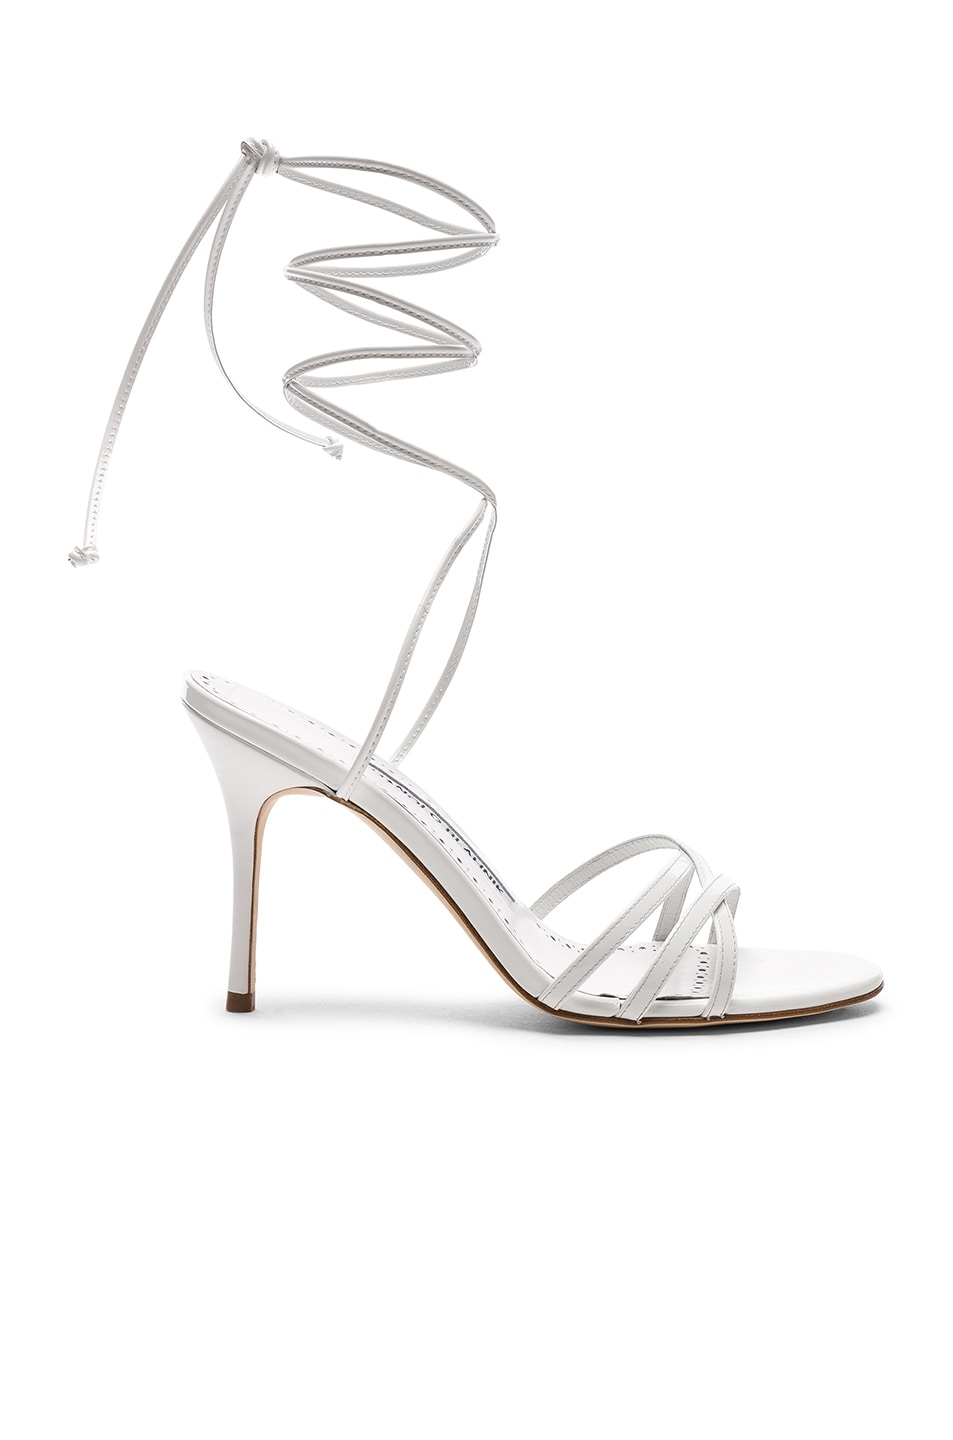 Image 1 of Manolo Blahnik Leva 90 Sandal in White